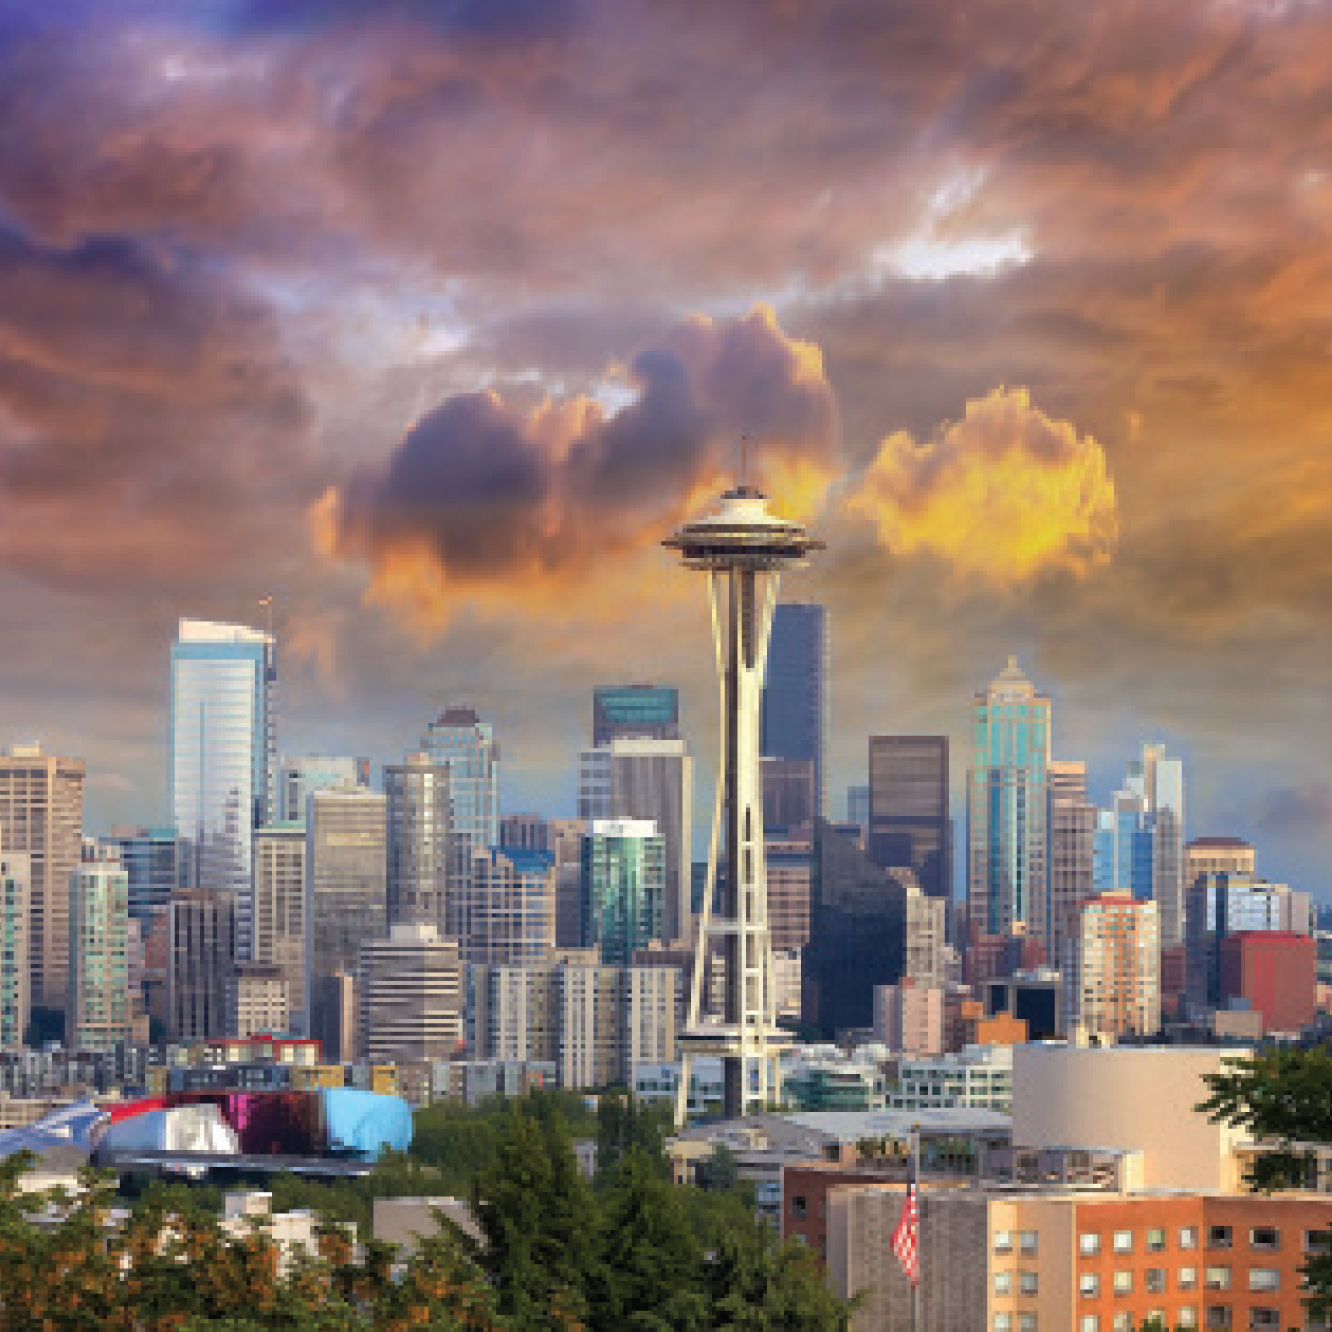 Jis 0915 seattle skyline m2nzmt